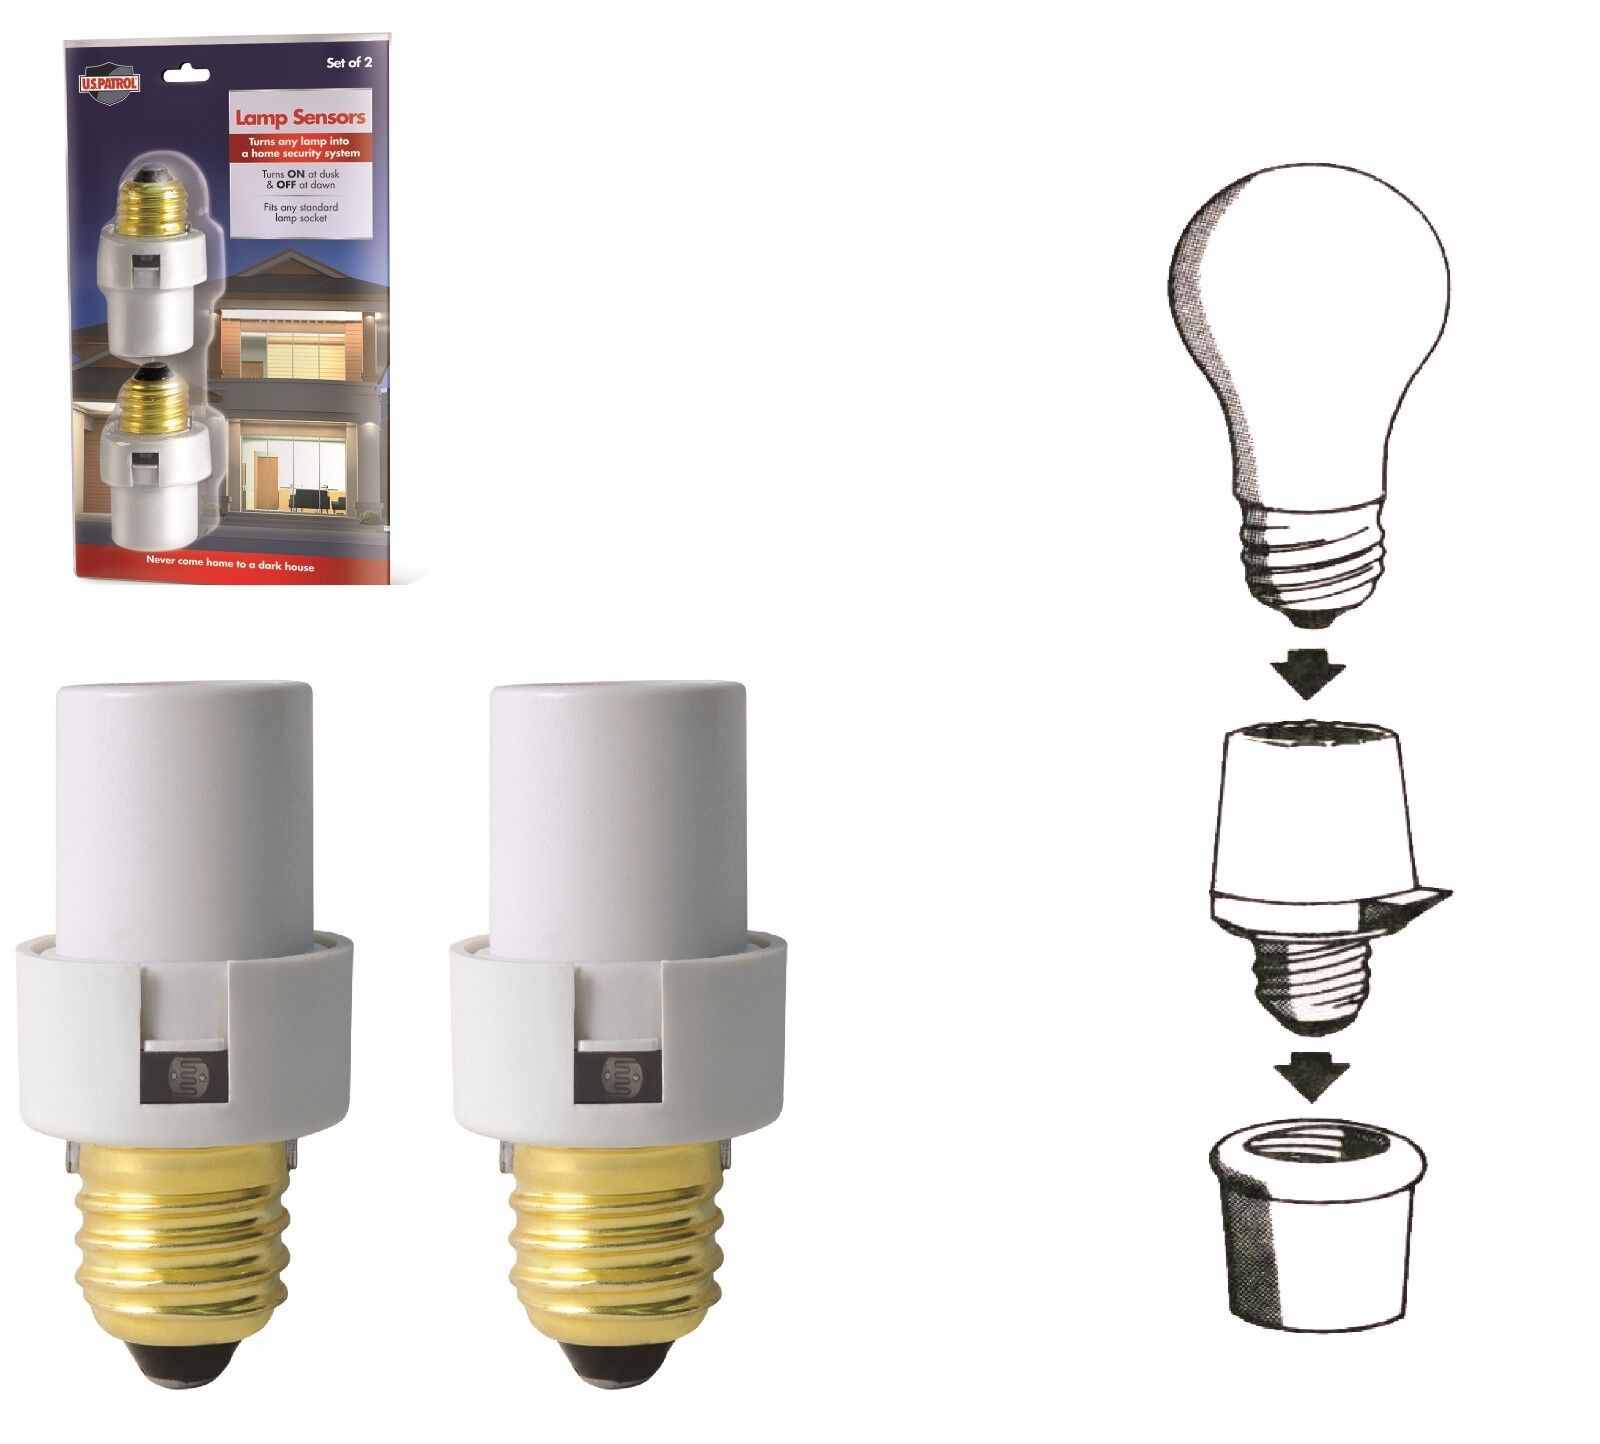 warm aglaia incandescent equivalent bulbs lighting category light to white bulb led indoor dawn lumens dusk